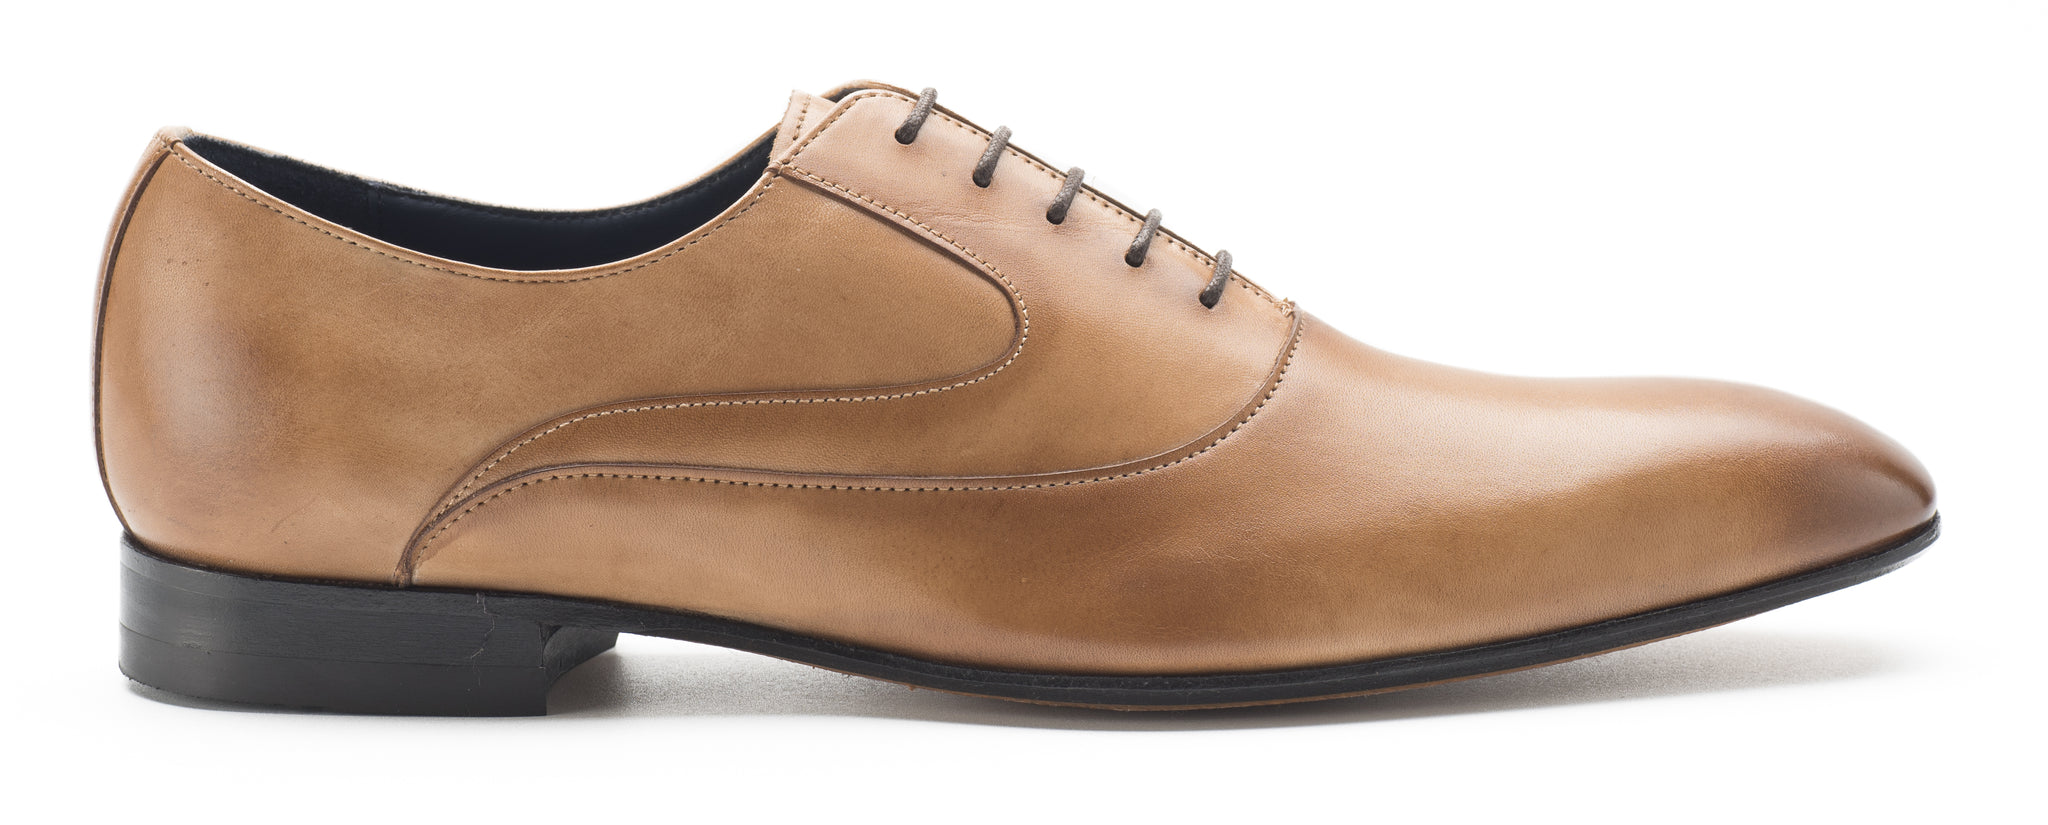 Heel & Buckle London One-Cut Oxfords Shoes